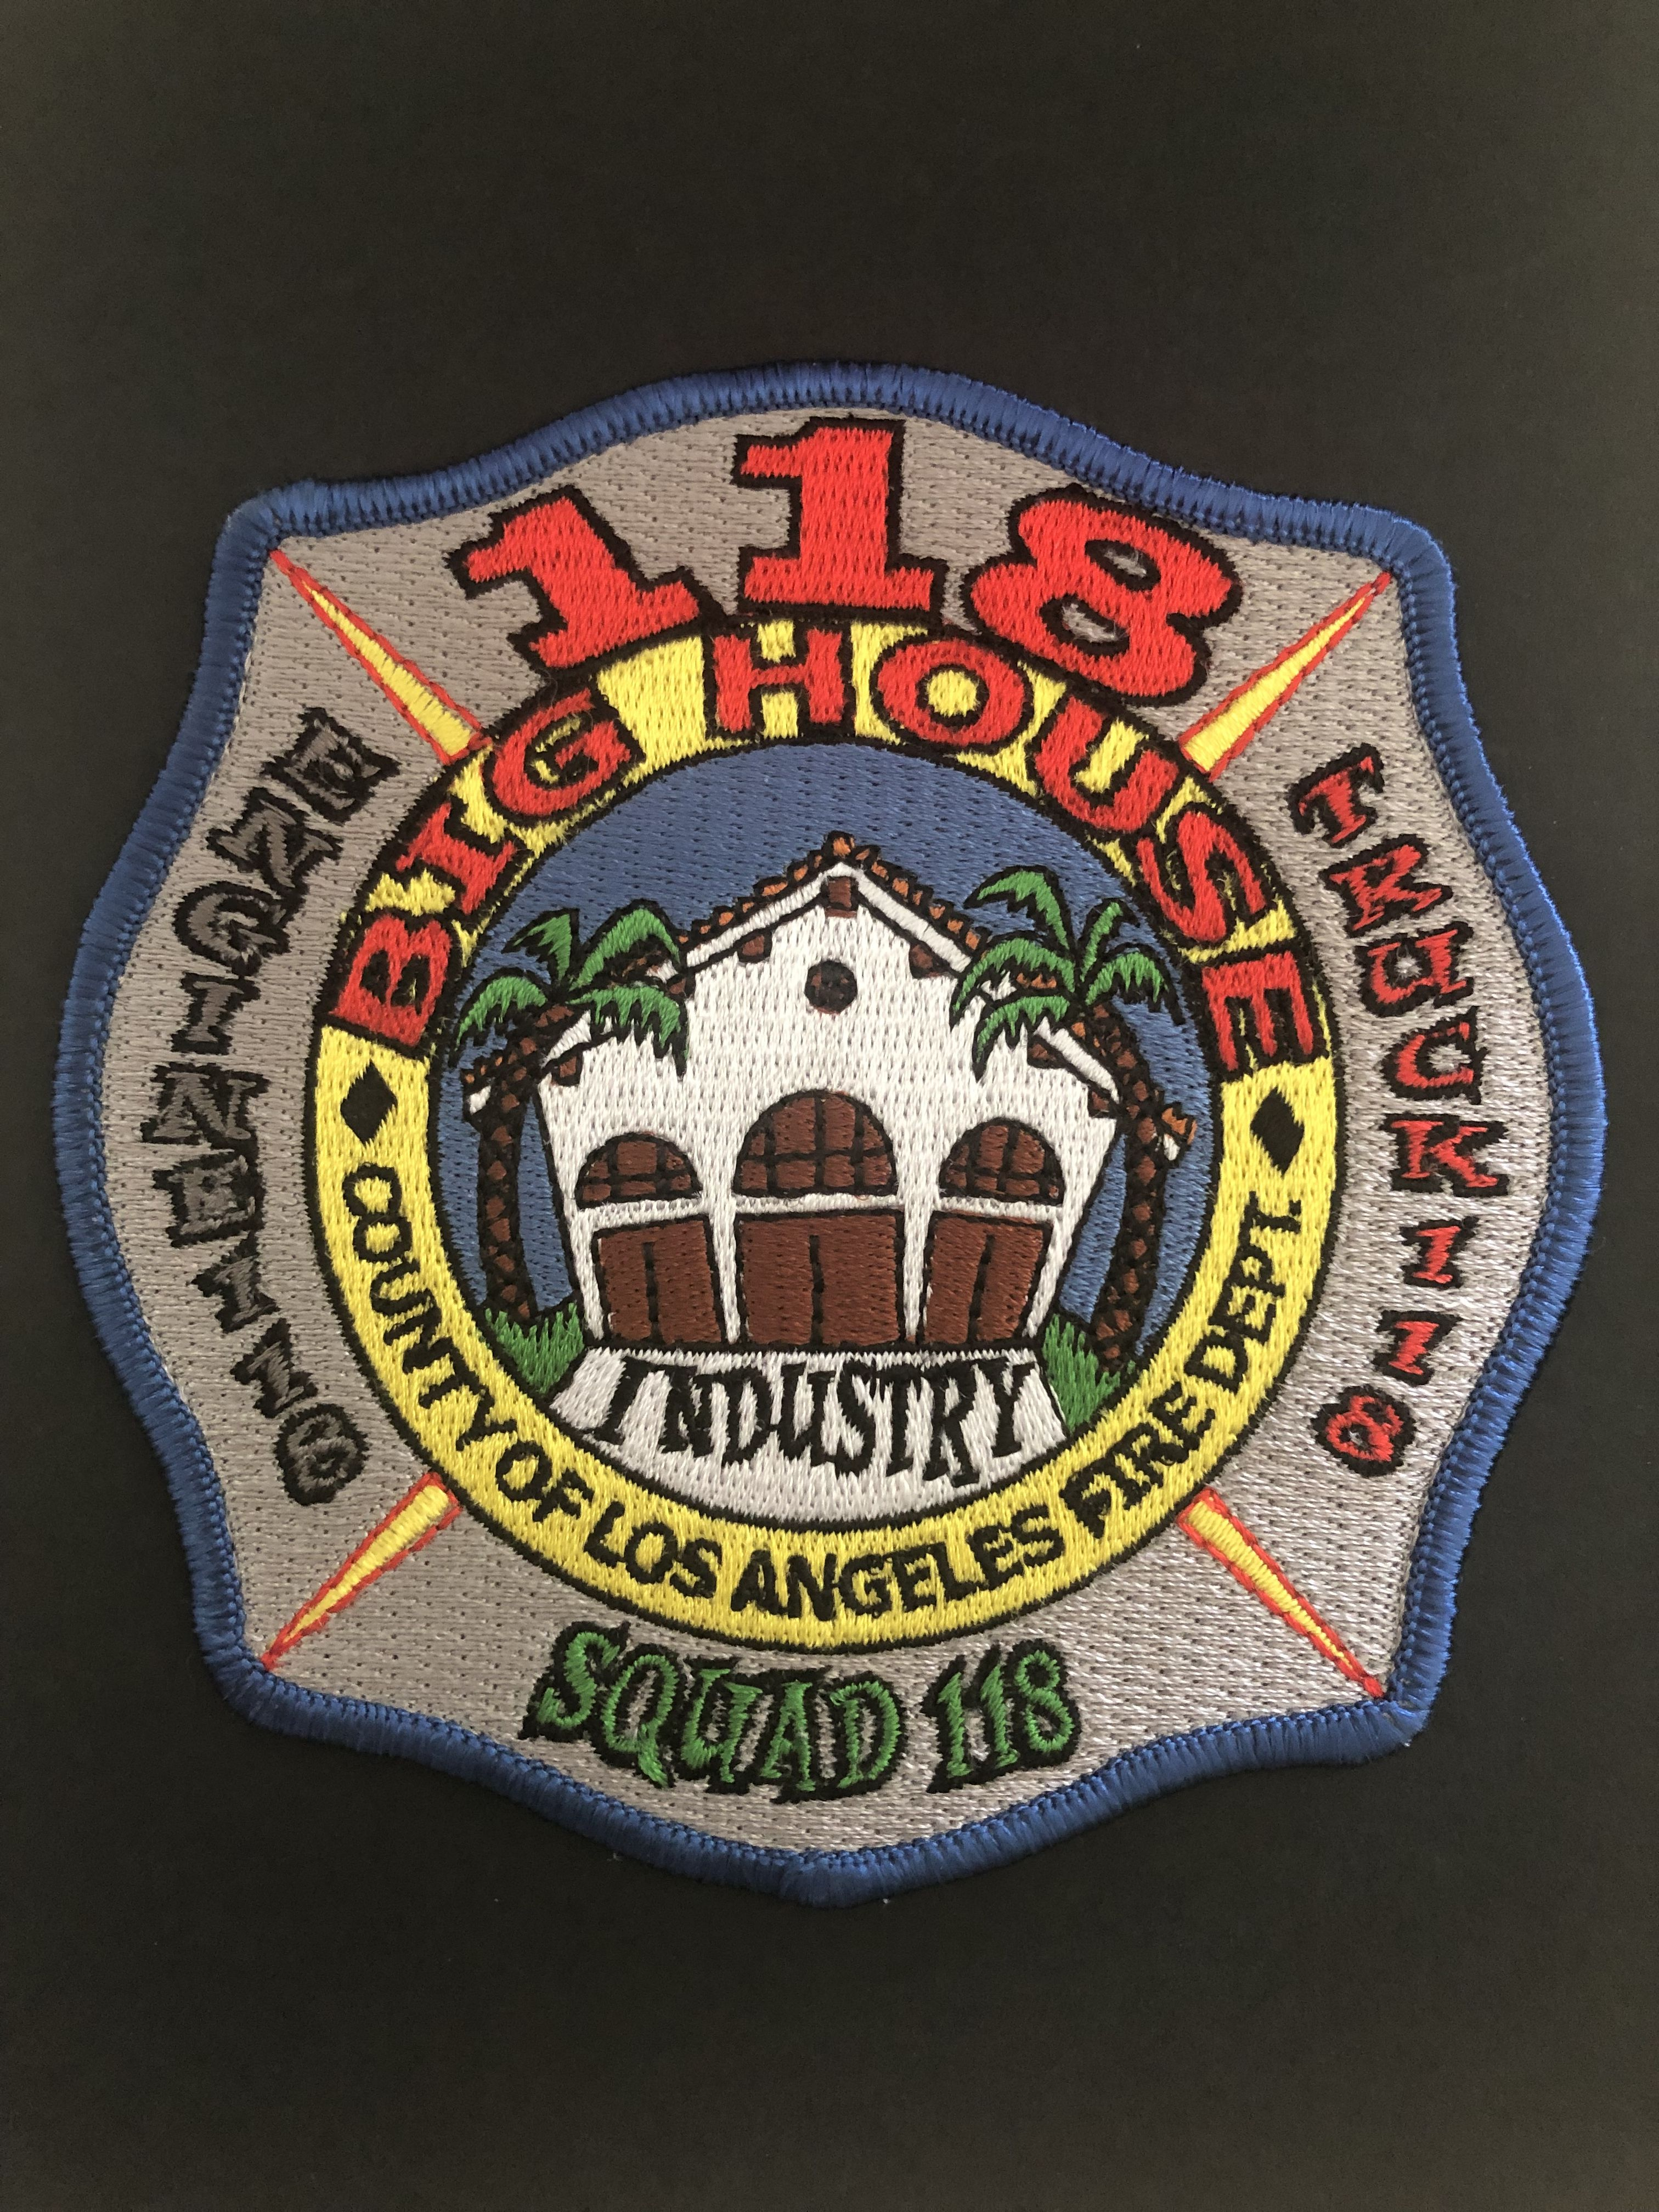 Los Angeles County Fire Department Station 118 Fire Department Firefighter Fire Service